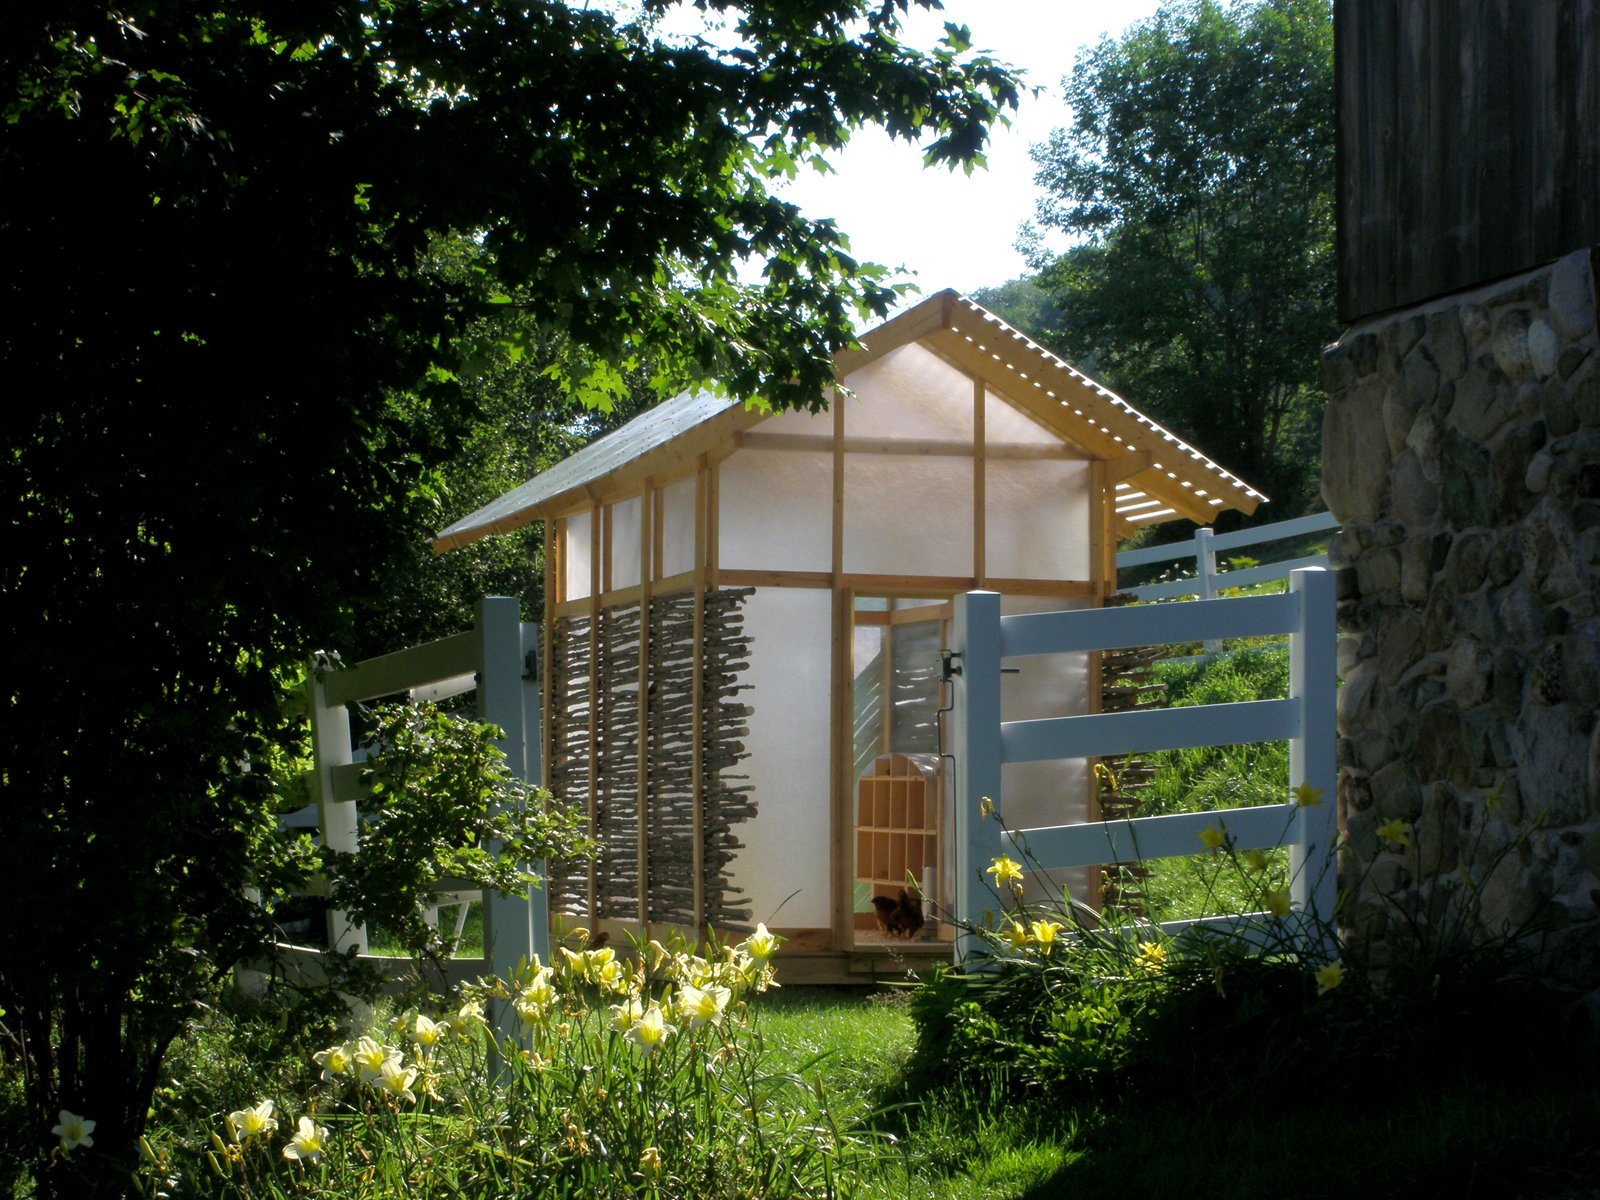 OLYMPUS DIGITAL CAMERA  Photo 3 of 4 in The Dos and Don'ts of Building Your Own Chicken Coop